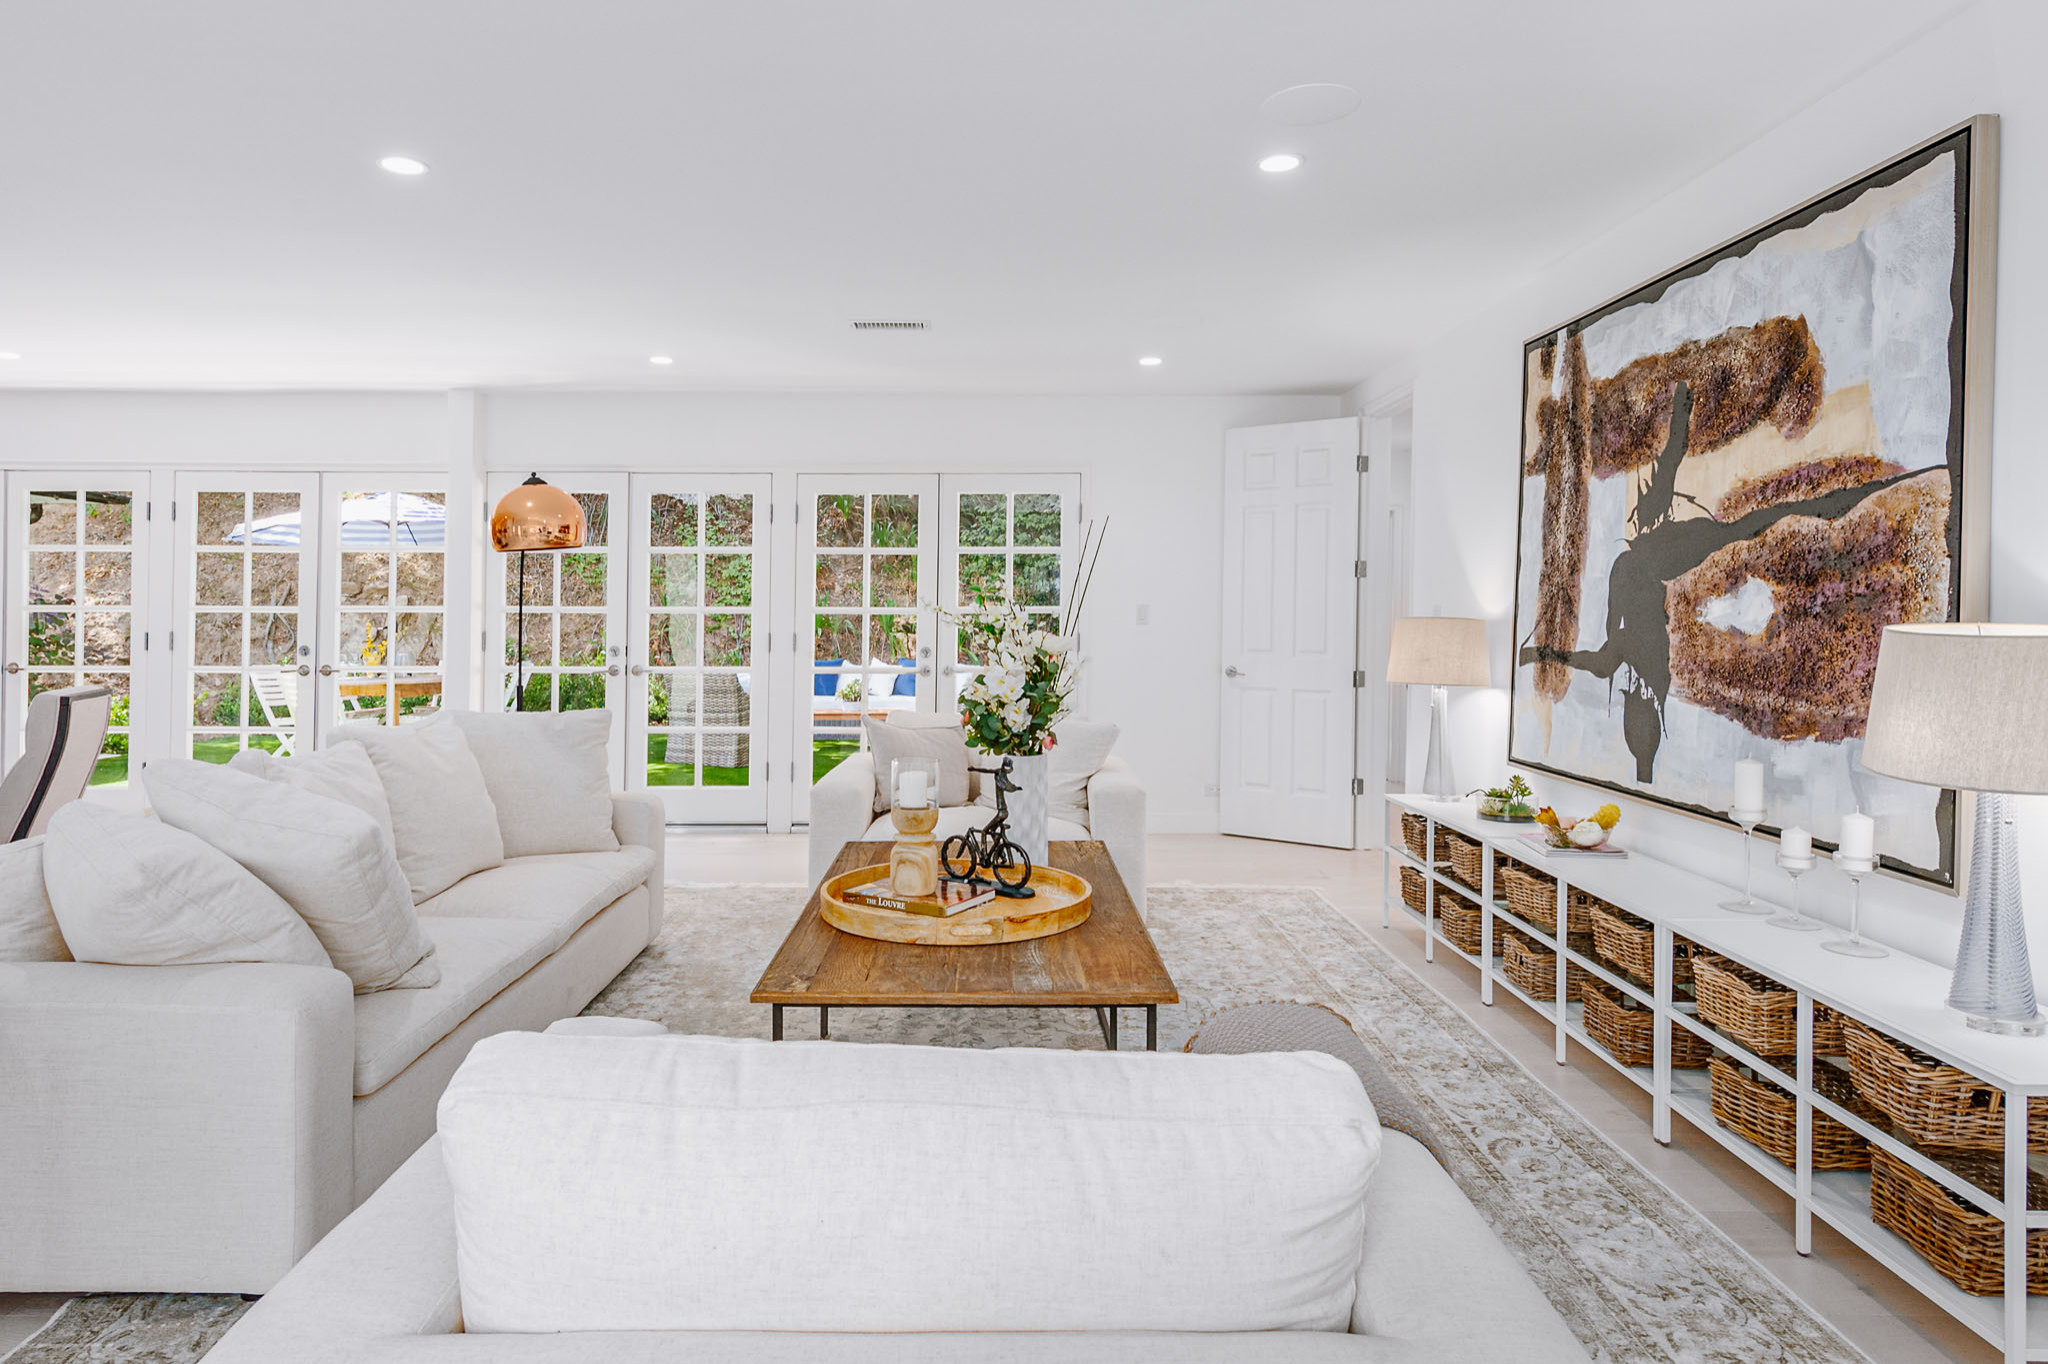 75 Beautiful Luxury Living Room Pictures Ideas February 2021 Houzz